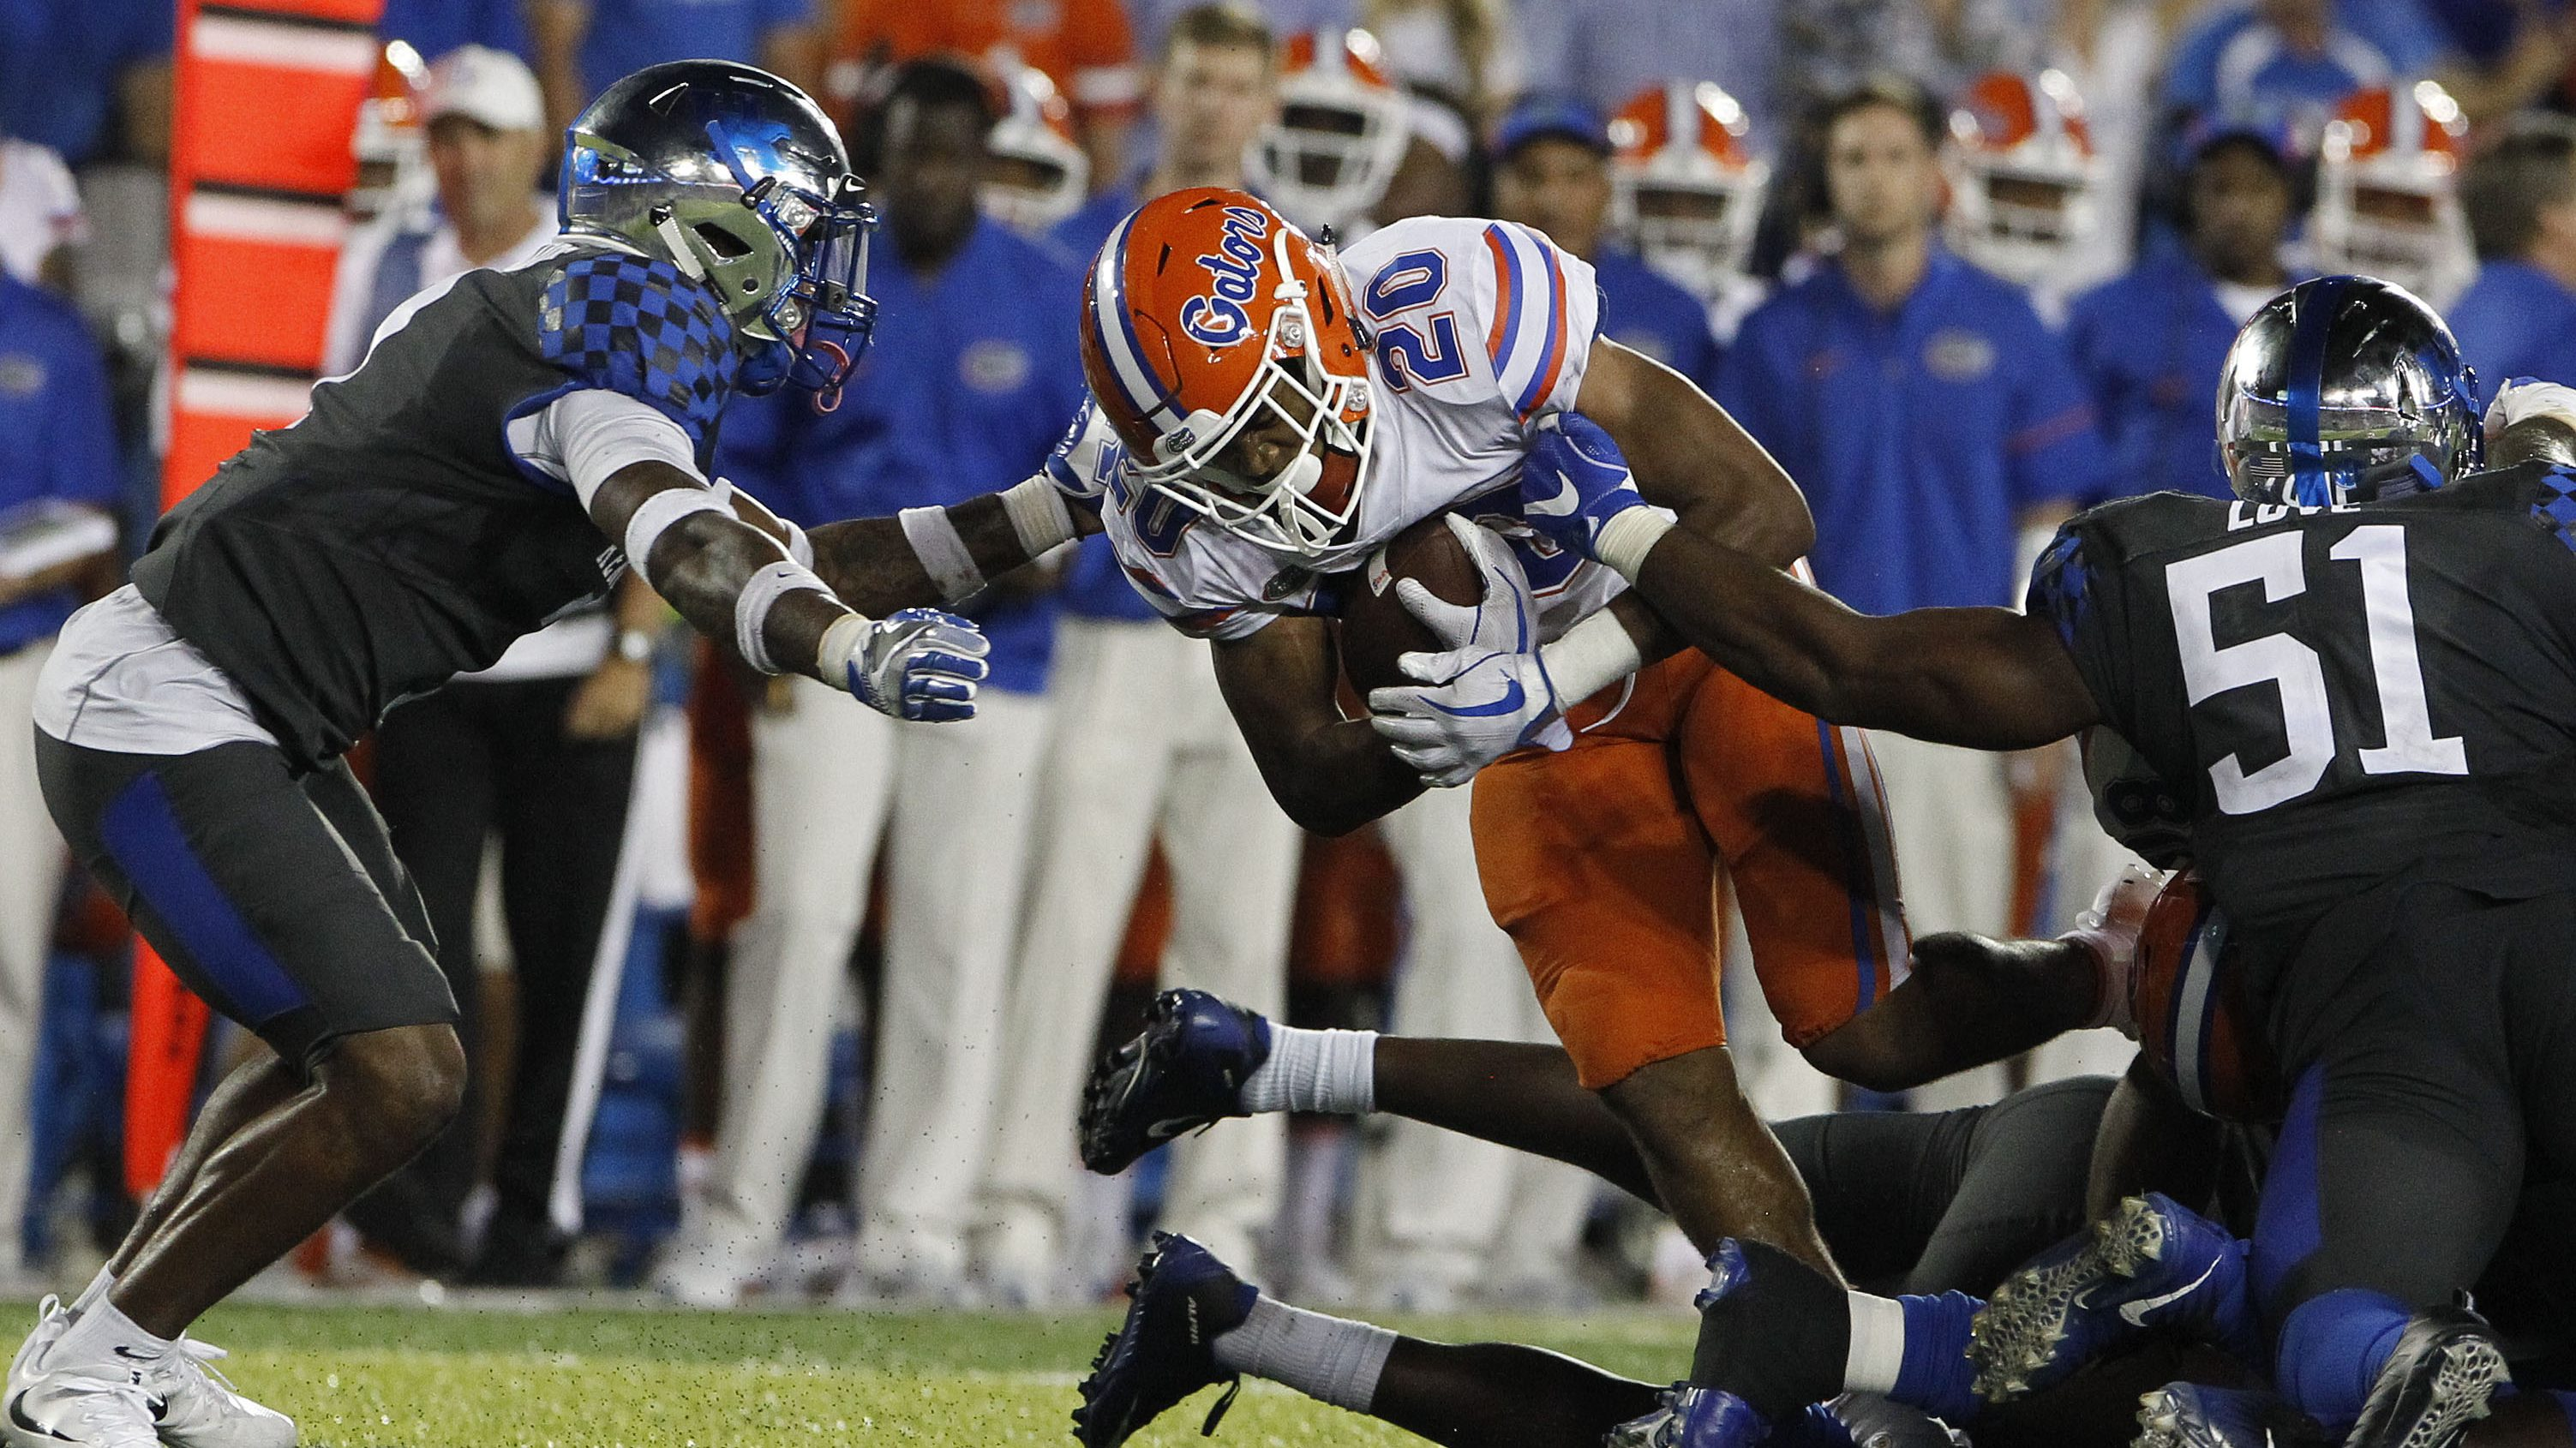 Florida Football Fights Back To Make It 31 Straight Years Over